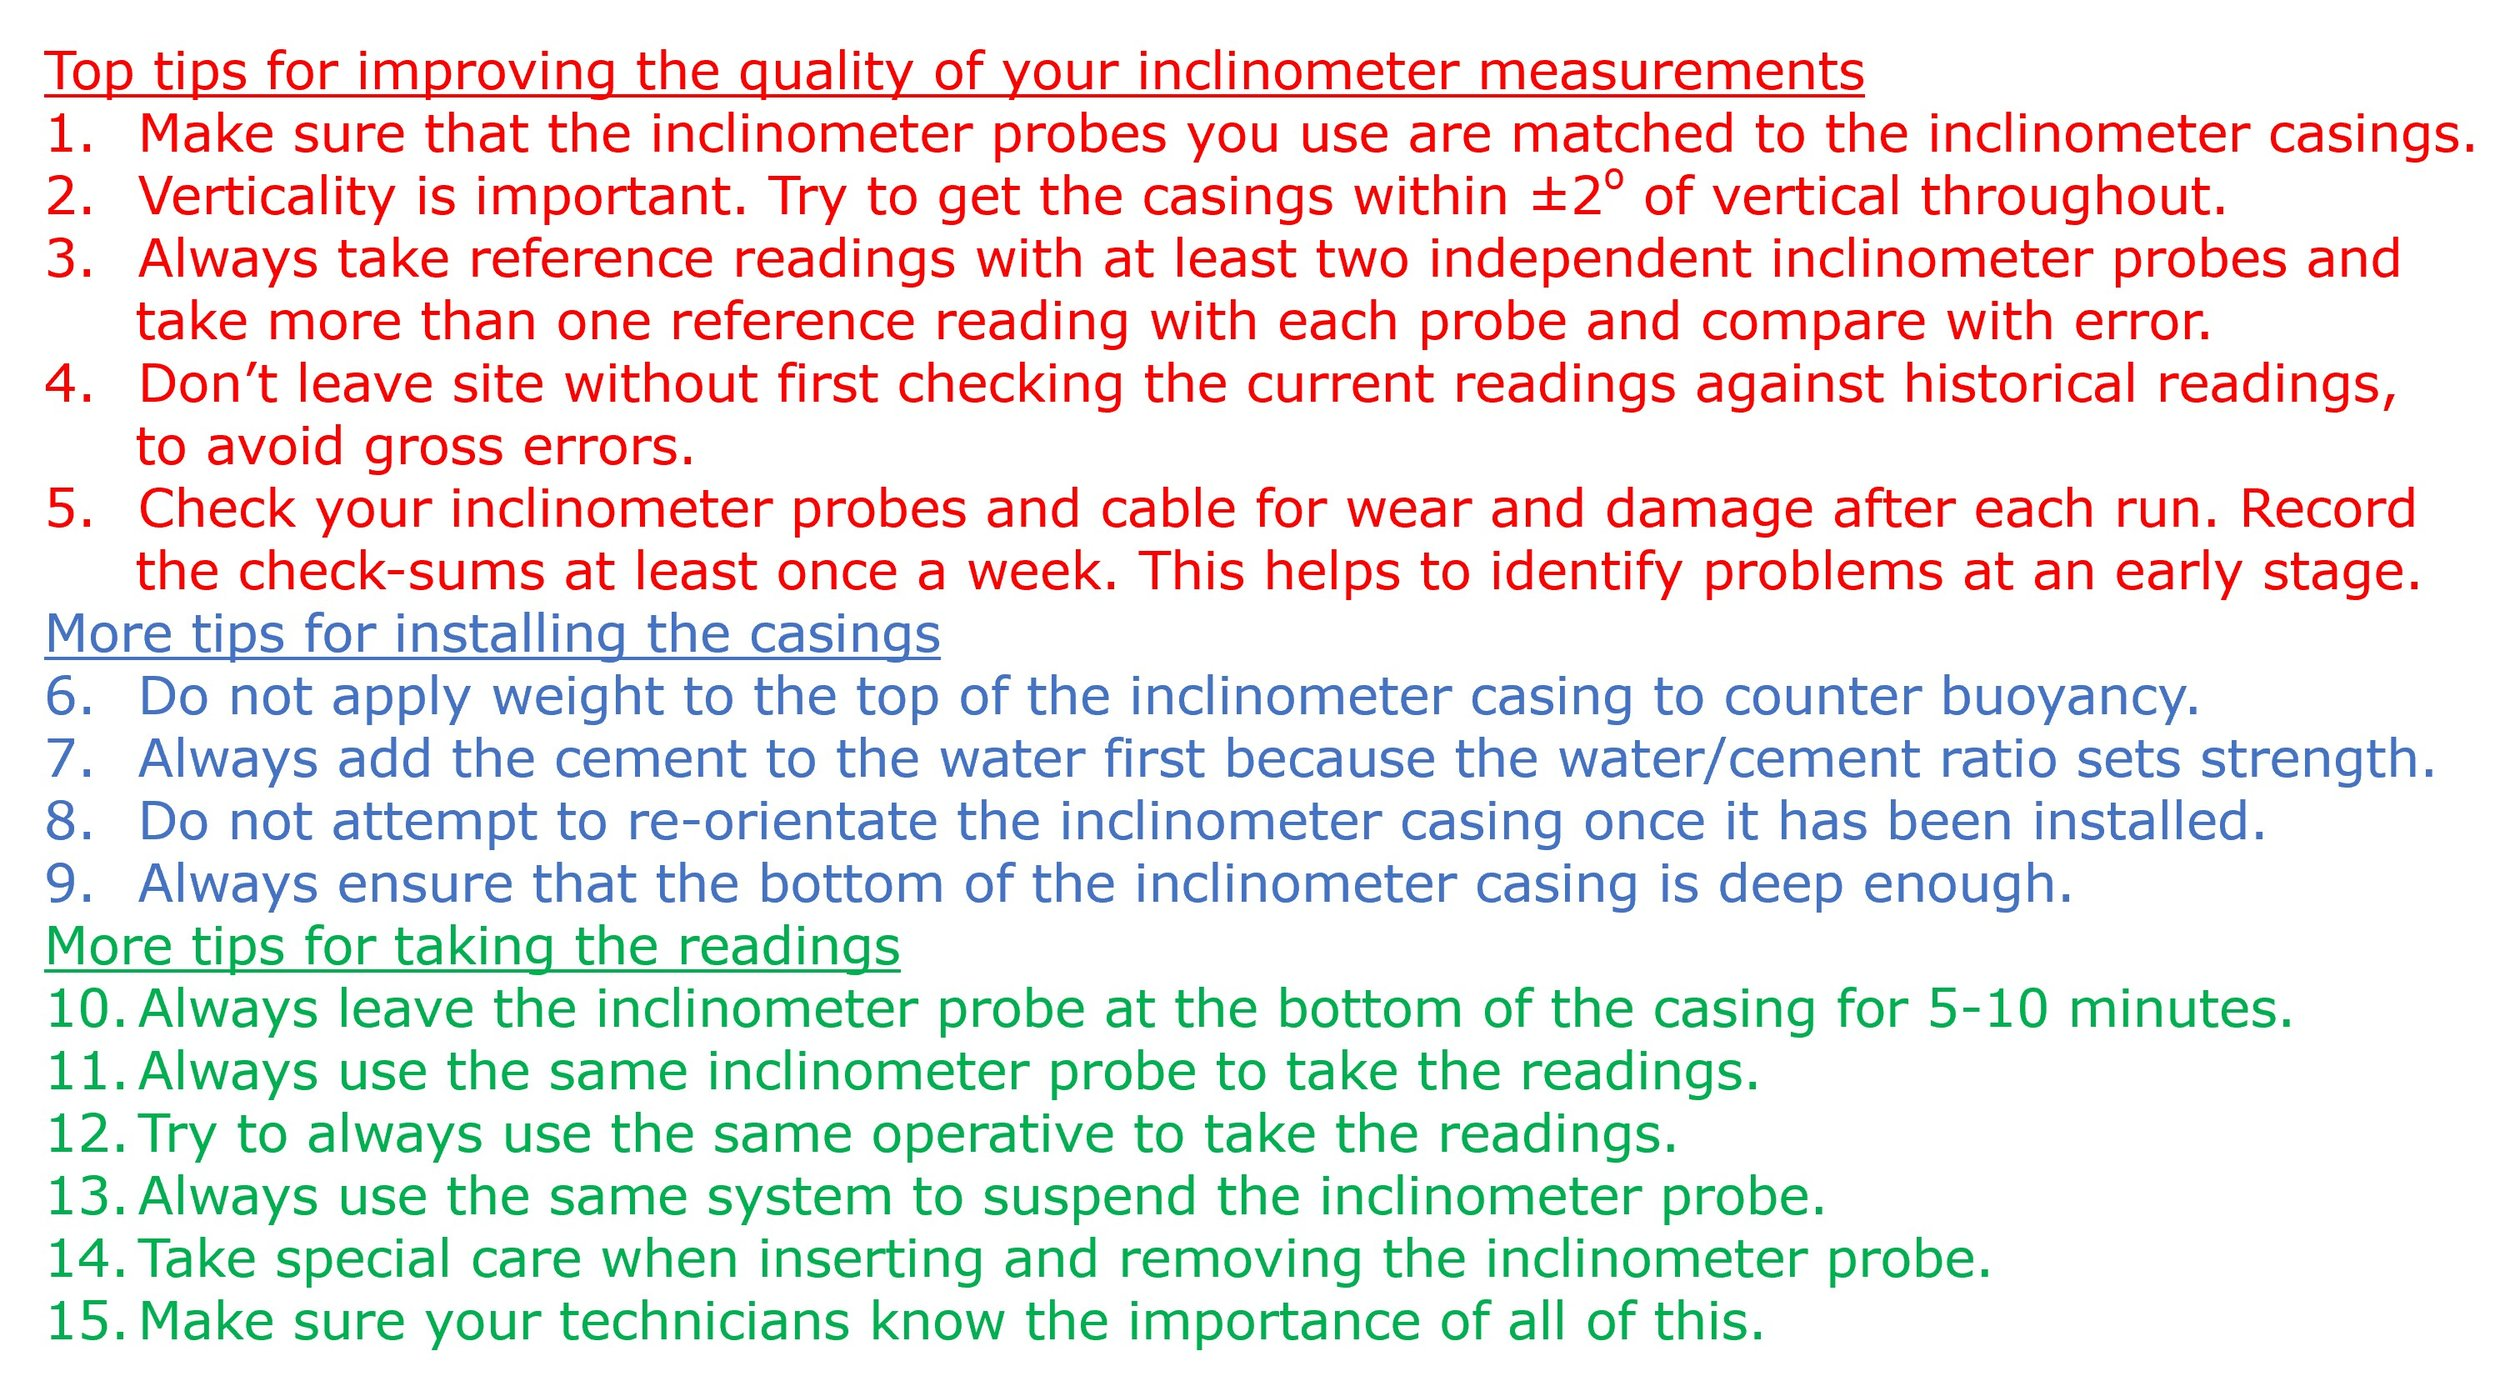 Top tips for improving the quality of inclinometer measurements.jpg